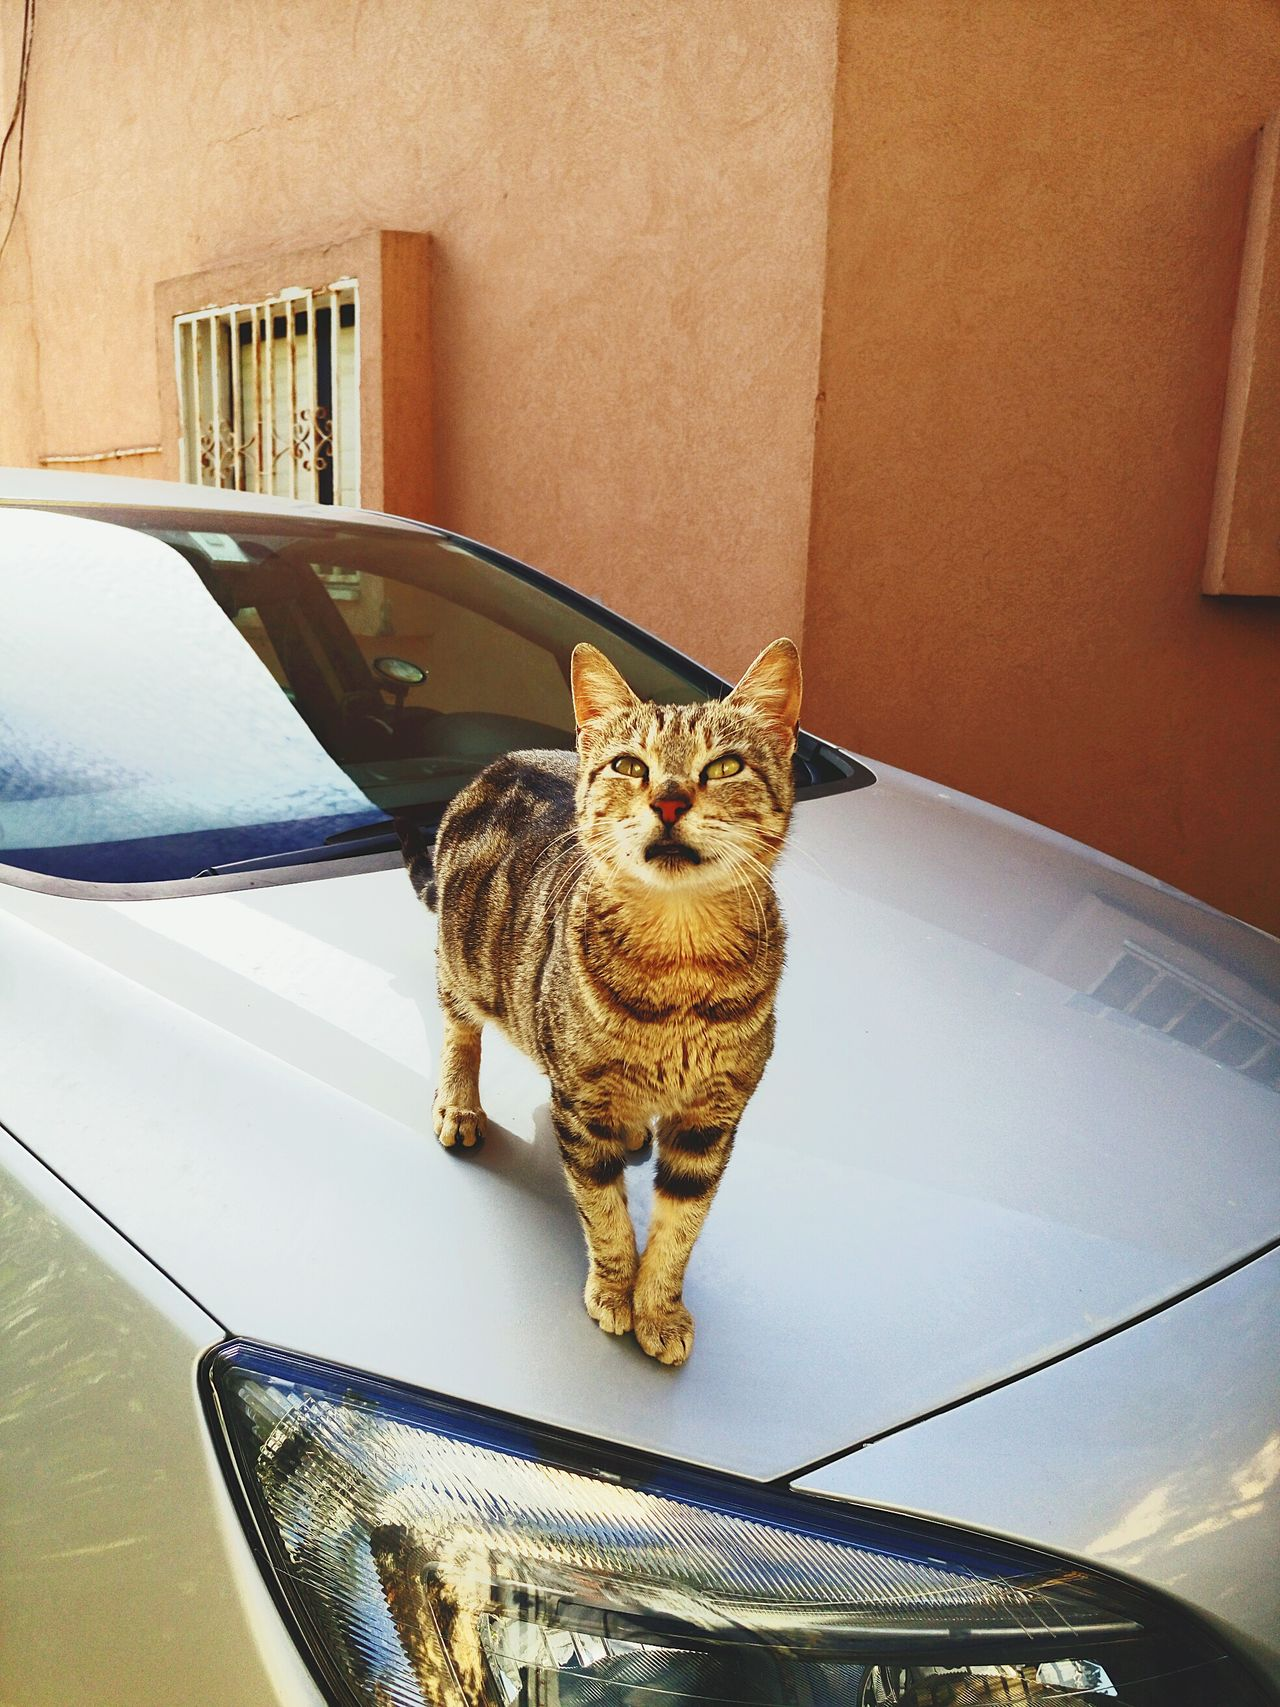 Showcase: January Hello World Relaxing Taking Photos Enjoying Life Israel Winter Morning Cat Lookingup Opel Astra